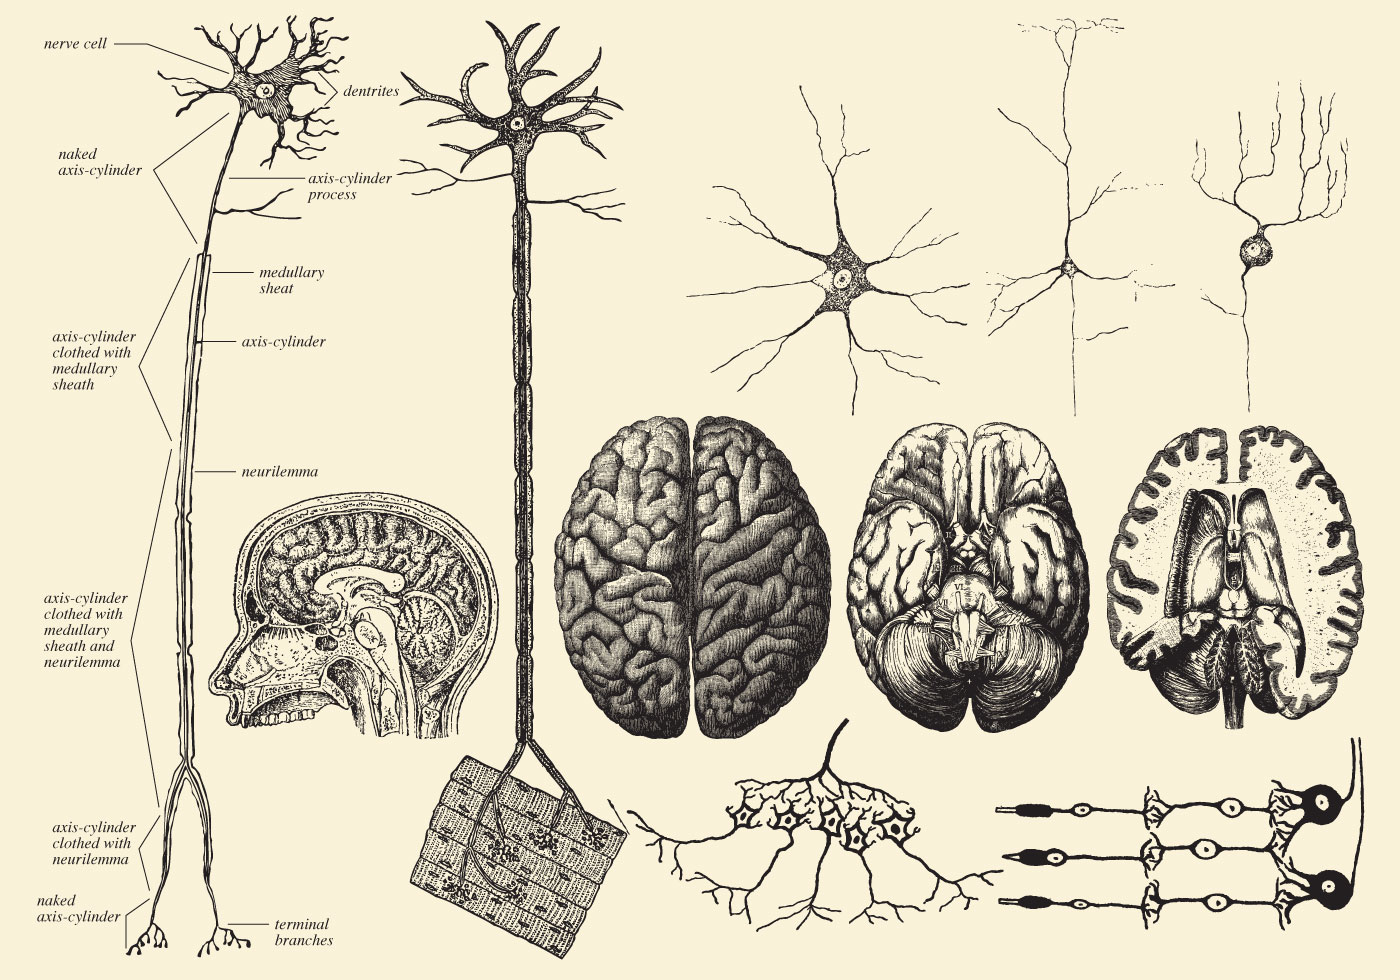 Brain And Neuron Drawings - Download Free Vector Art ...